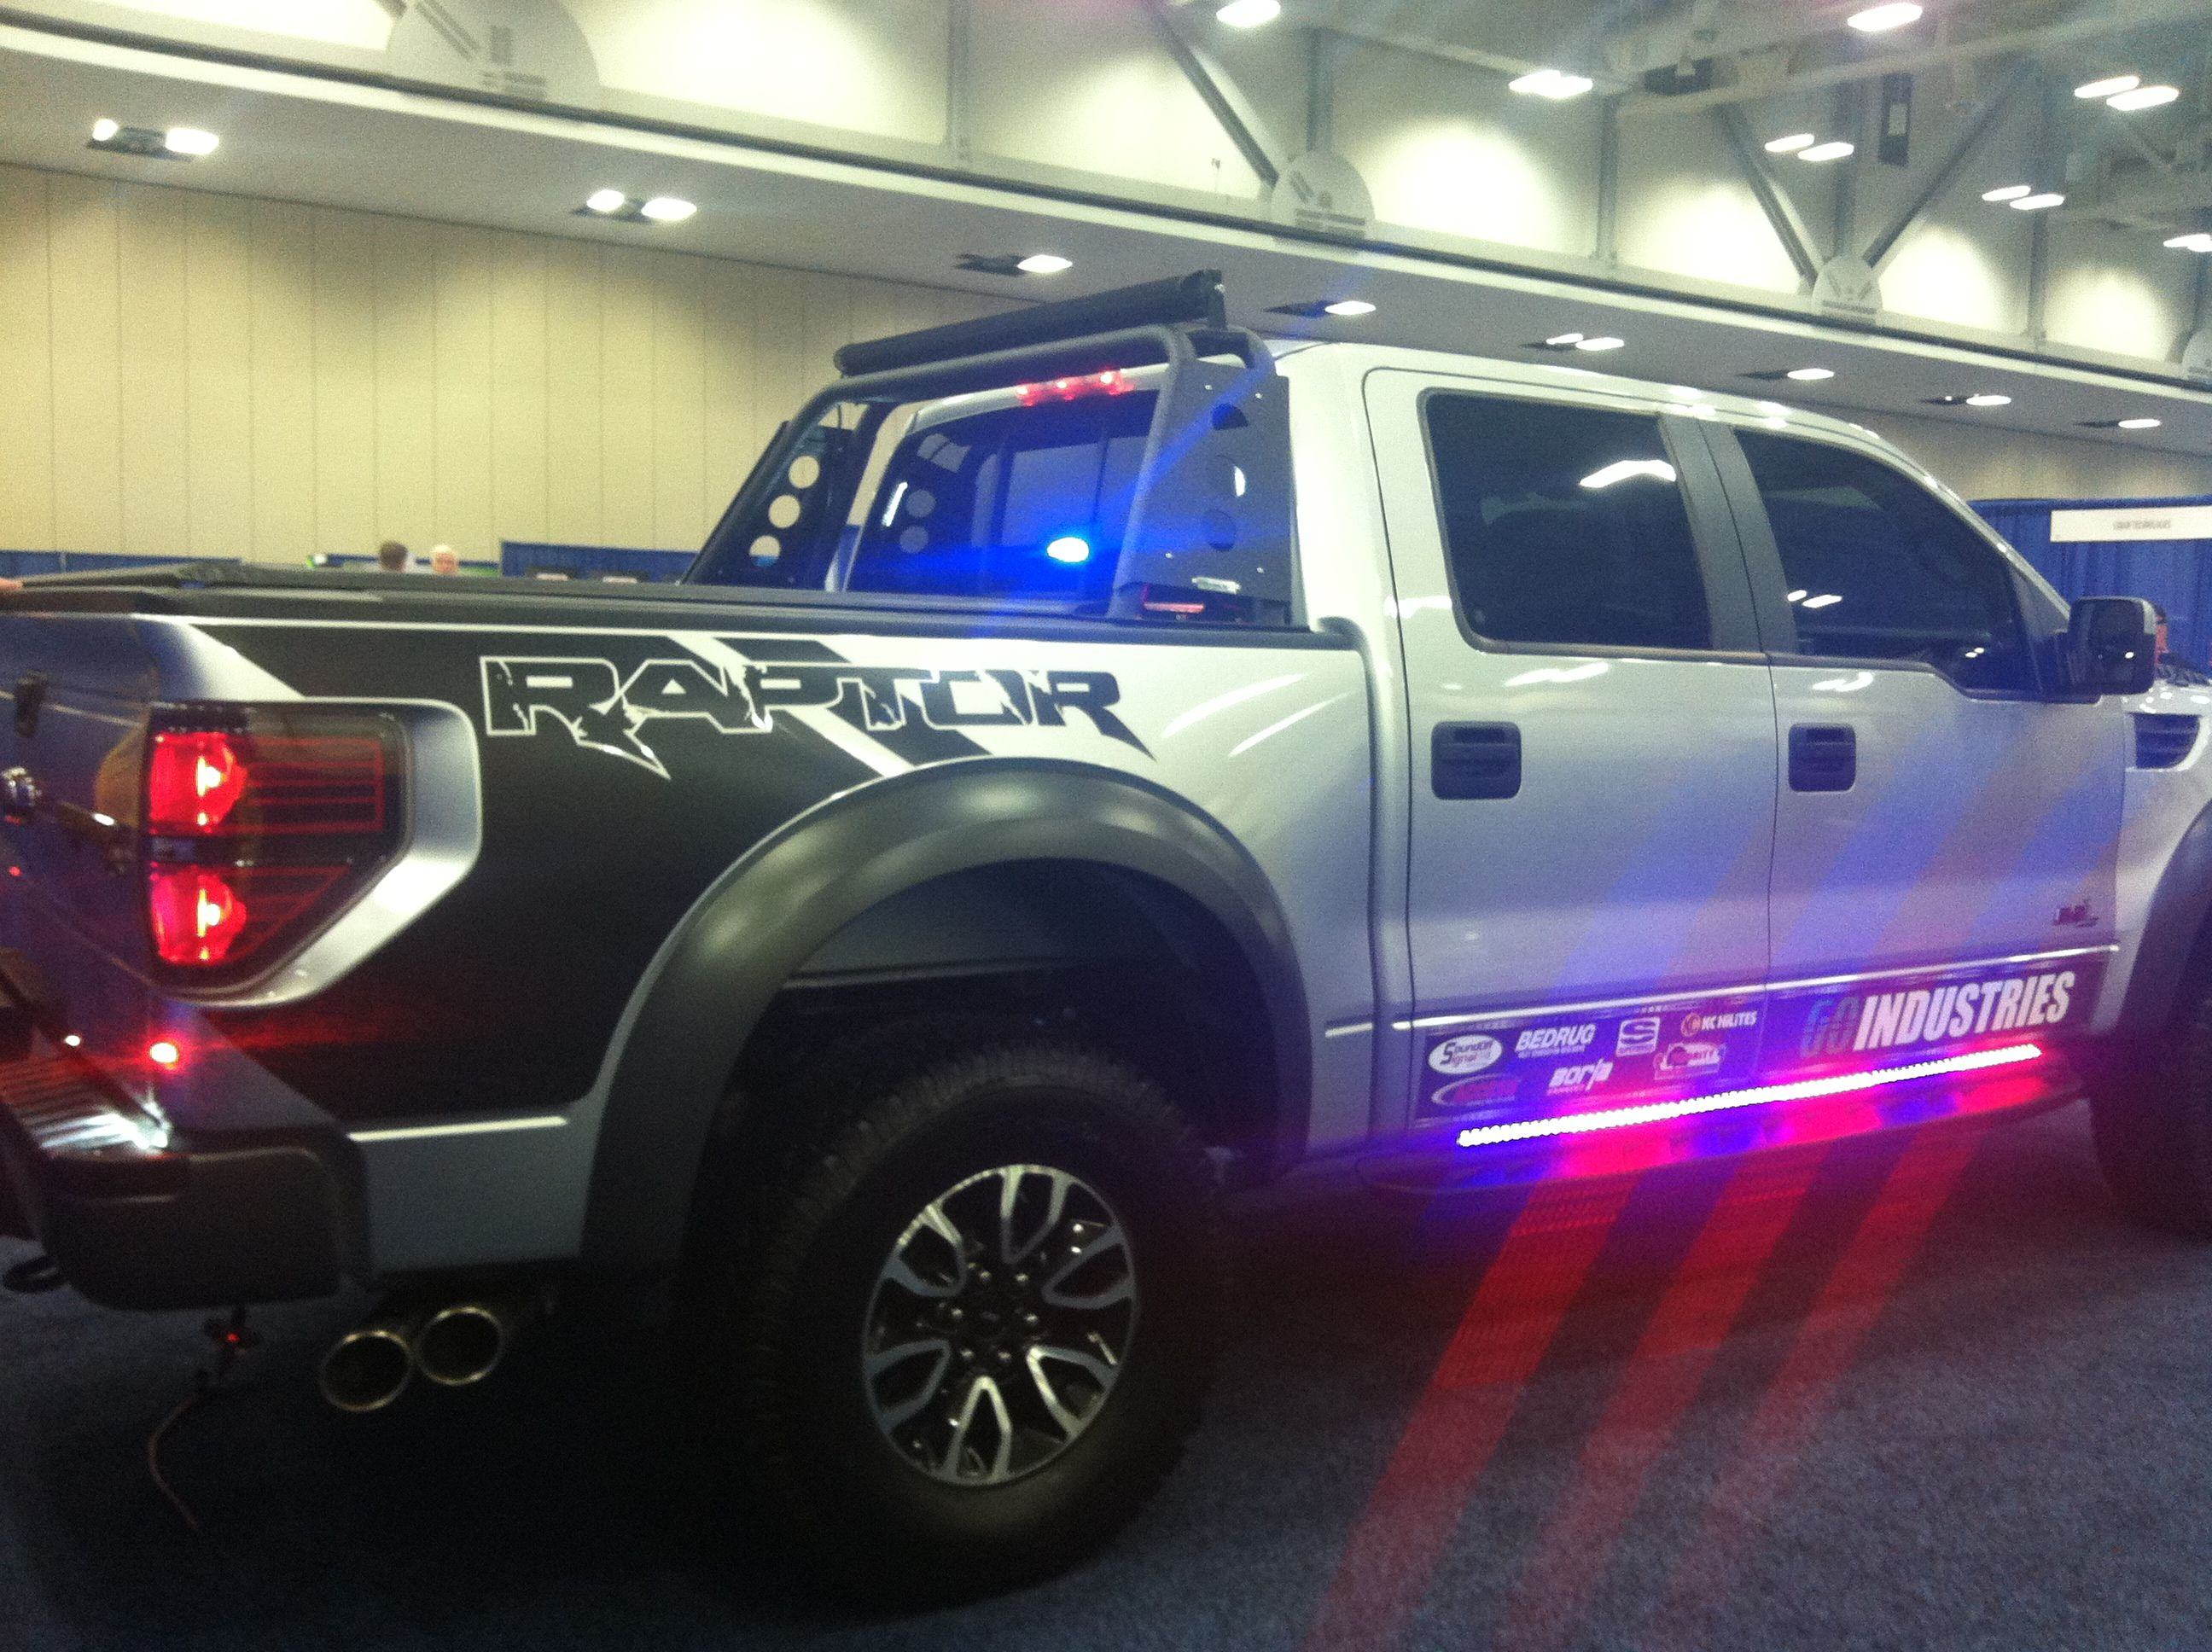 Ford raptor special service vehicle at the police fleet expo in louisville kentucky 8